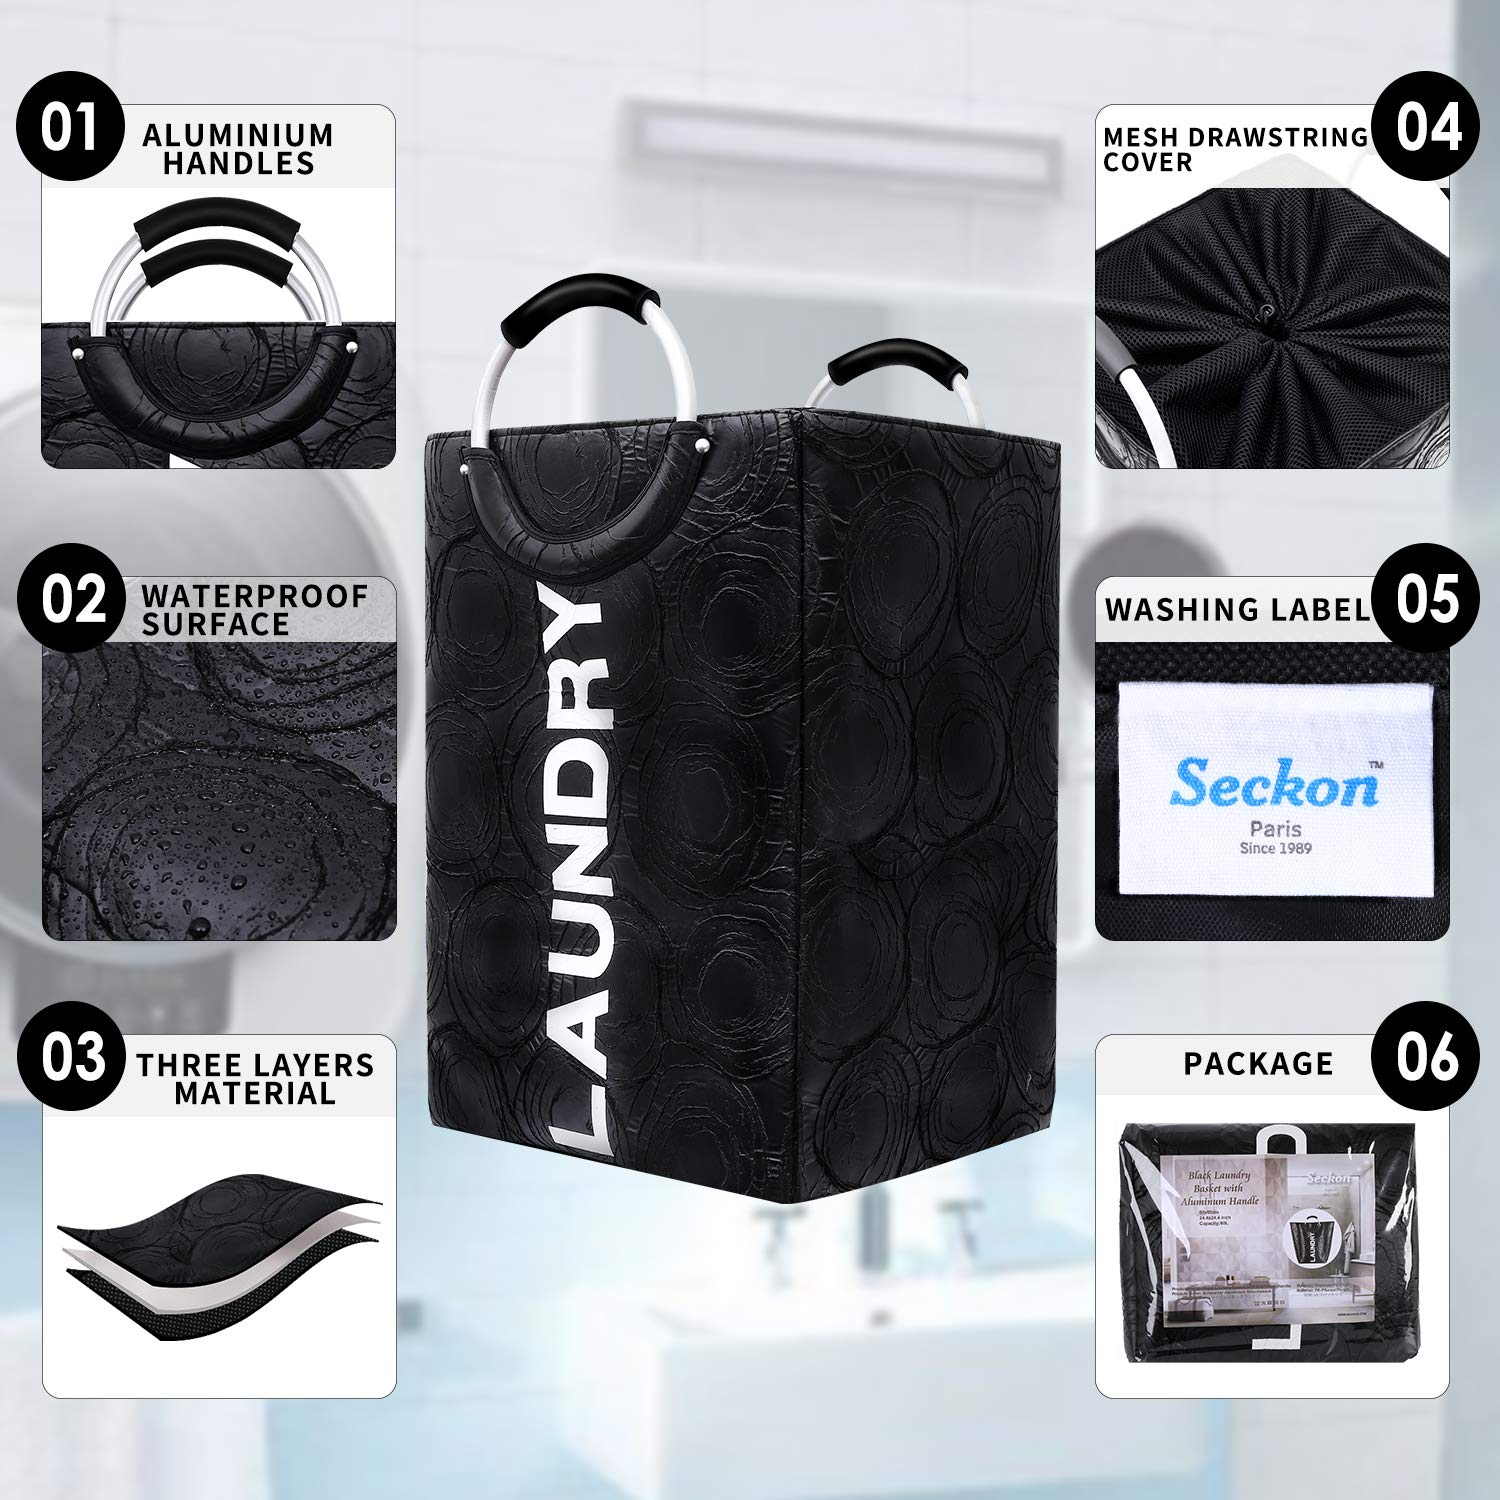 Seckon Large Waterproof Laundry Basket Hamper Bag with 3 Thick Layers Material and Portable Aluminium Alloy Handles